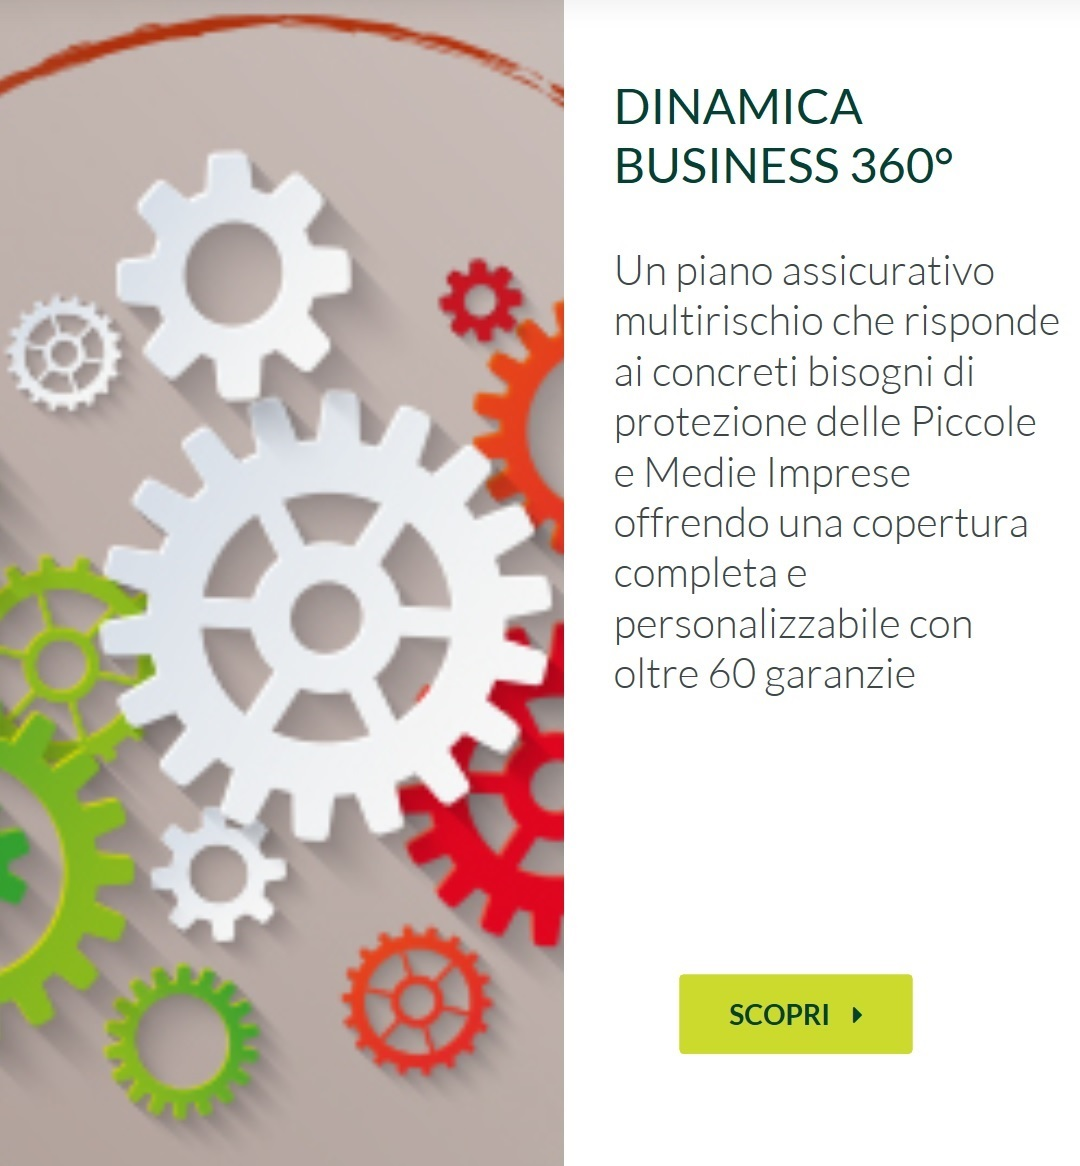 Groupama Dinamica Business 360